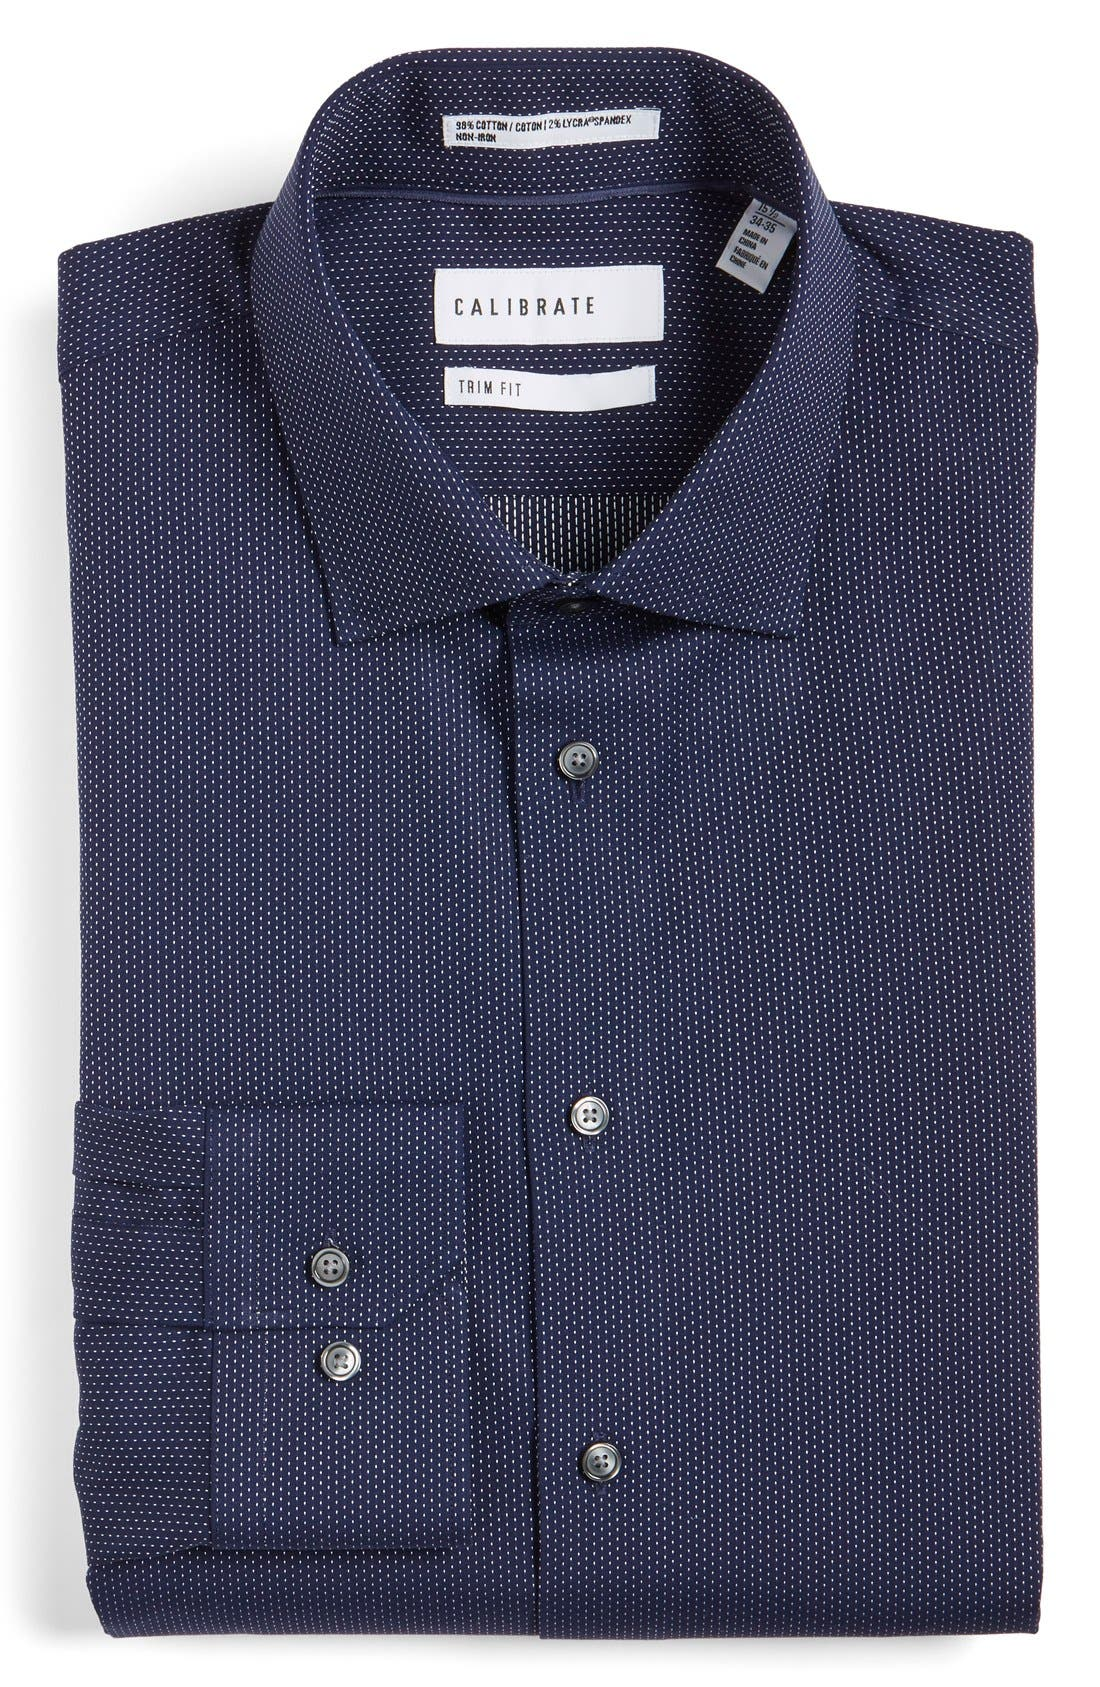 Calibrate Trim Fit Non-Iron Microdot Dress Shirt